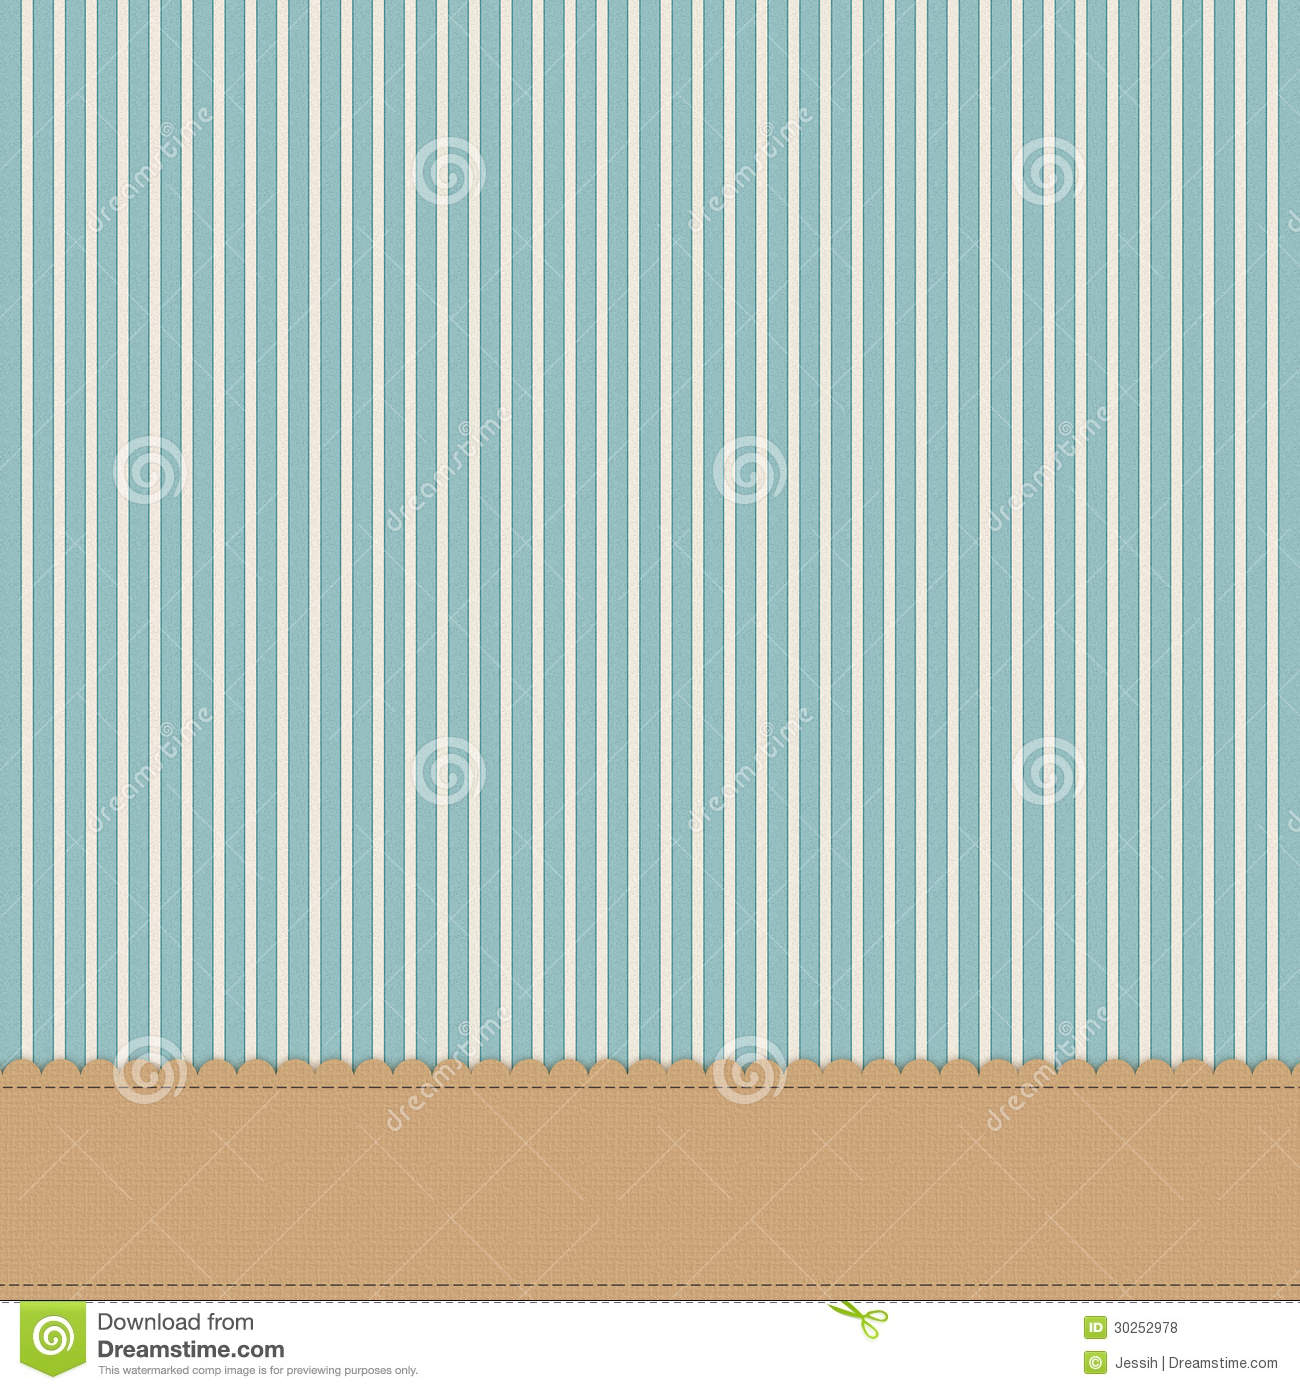 Light Blue Striped Background Royalty Free Stock Photos ...